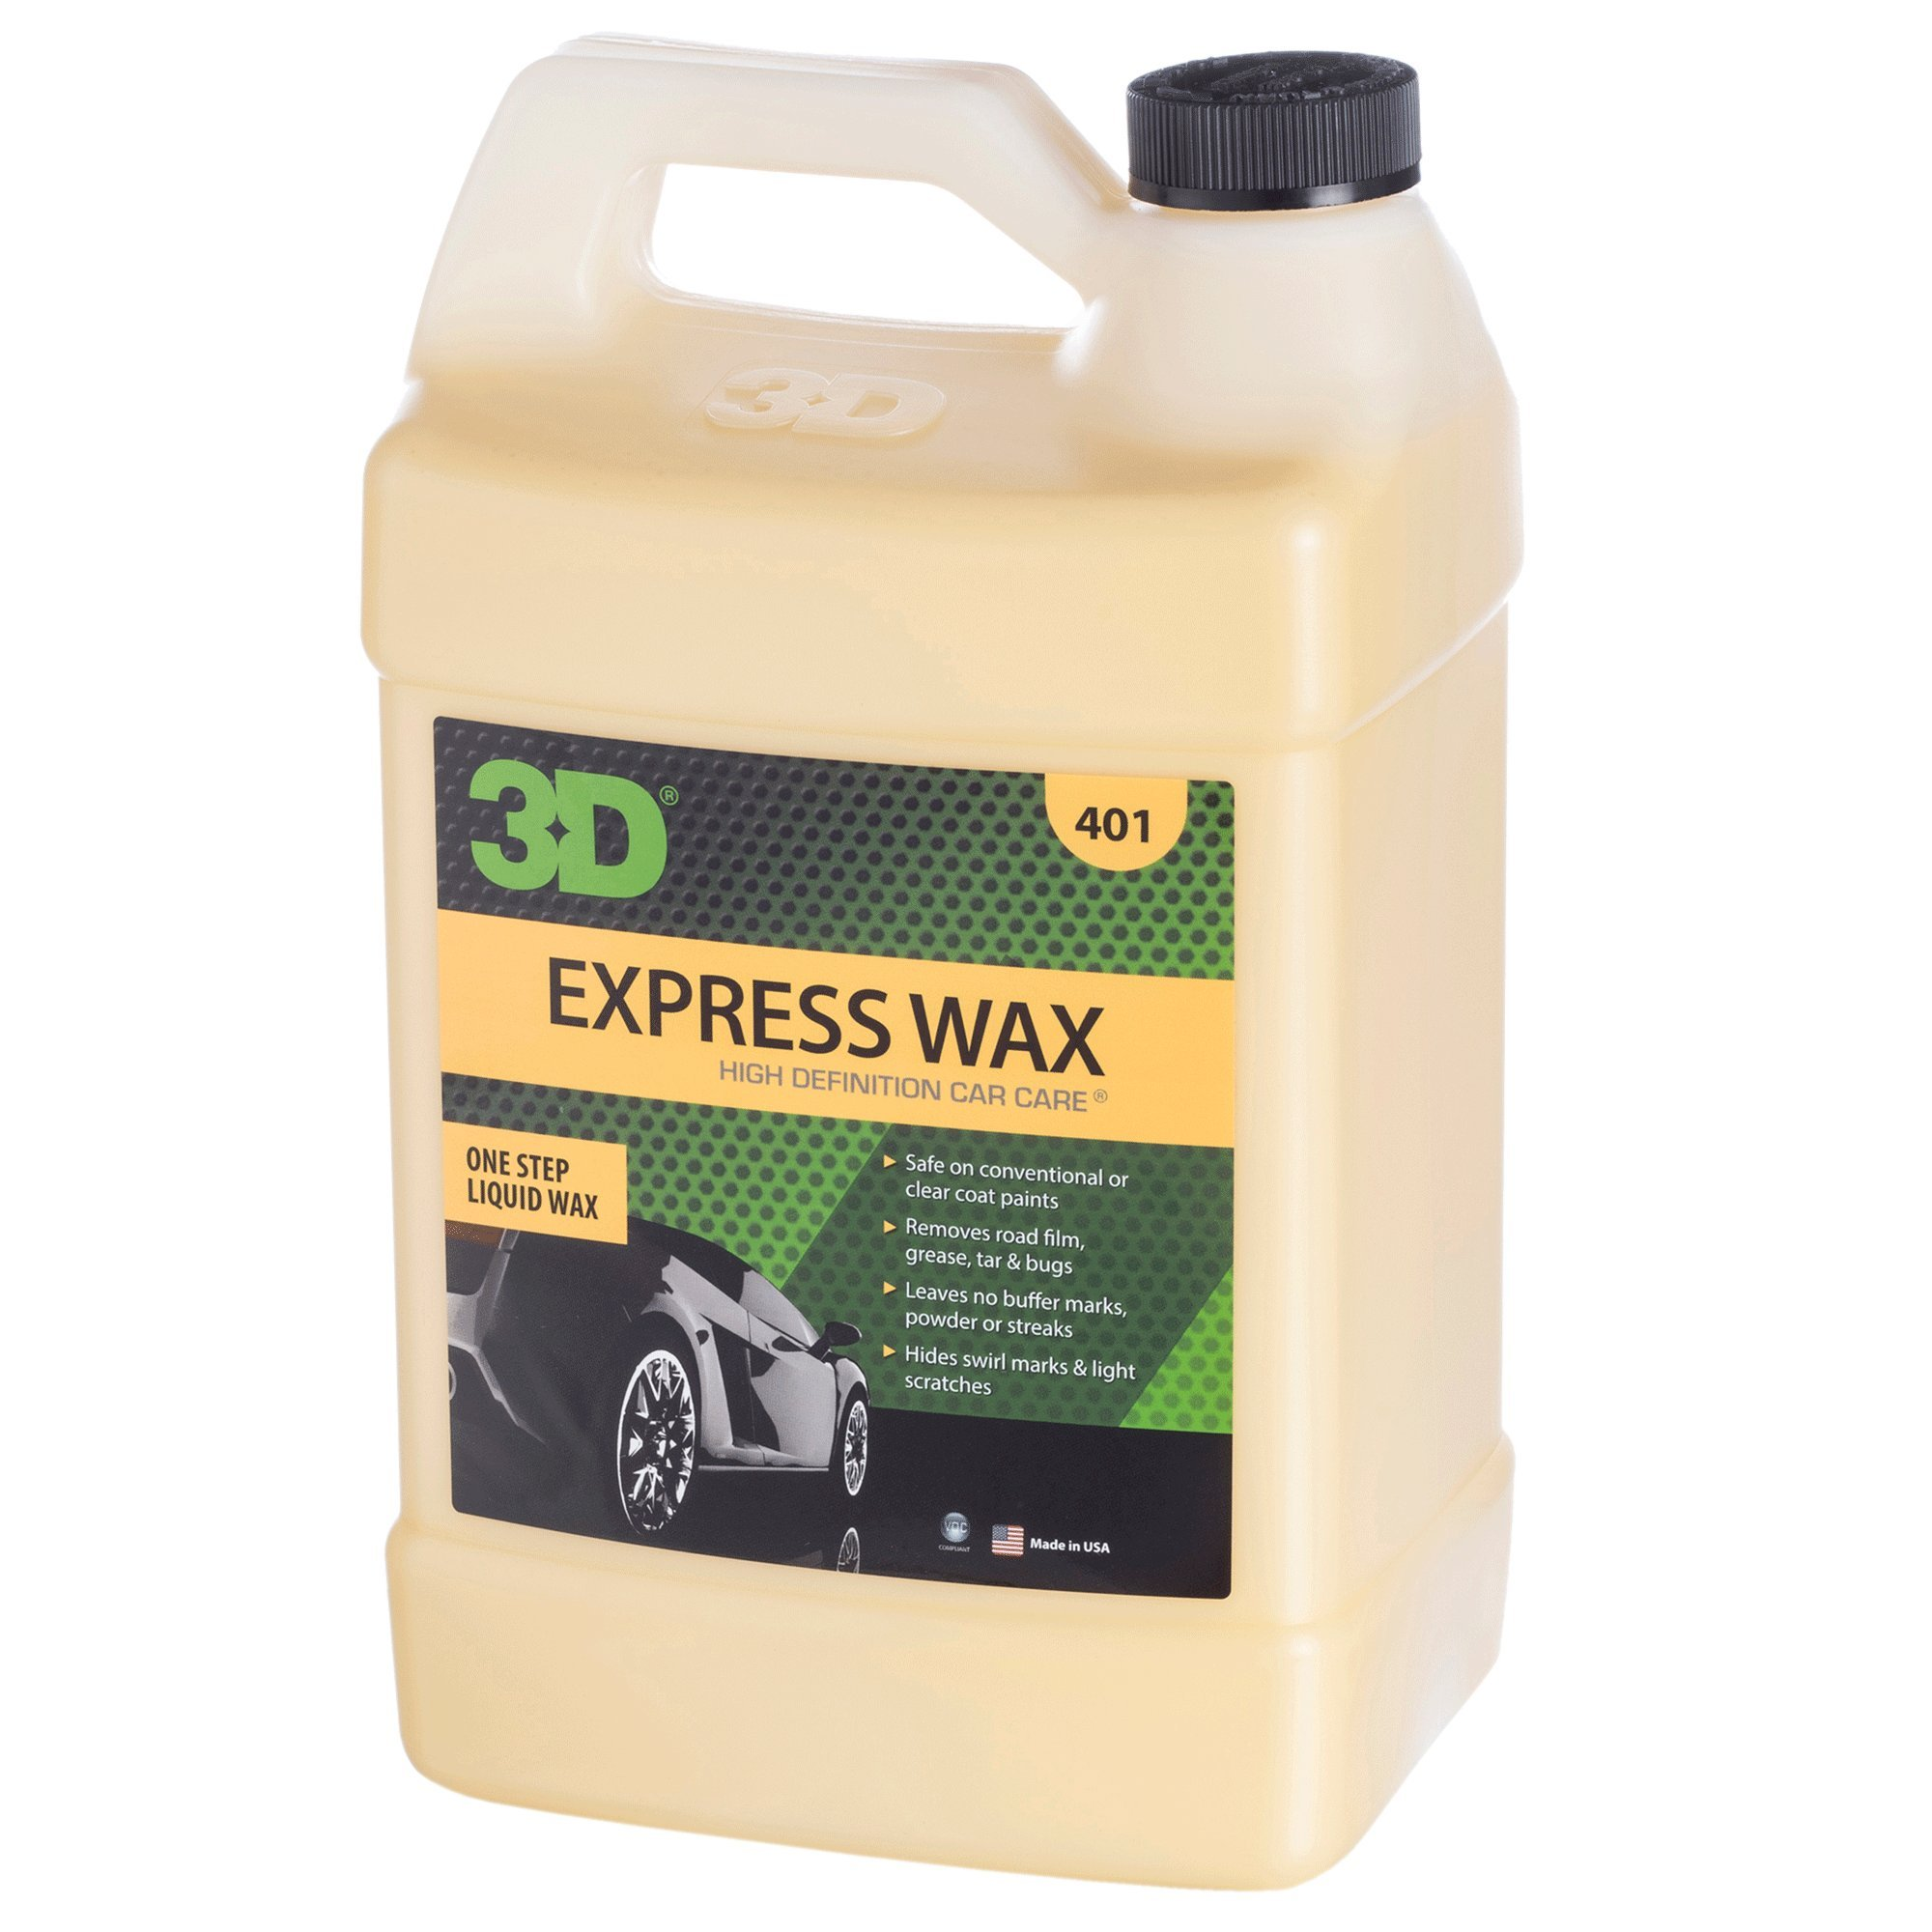 3D Express Wax One Step Liquid Wax | No Powder Residue or Streaking | Use as Dry Wash or Liquid Detailer | Made in USA | All Natural | No Harmful Chemicals (Gallon)